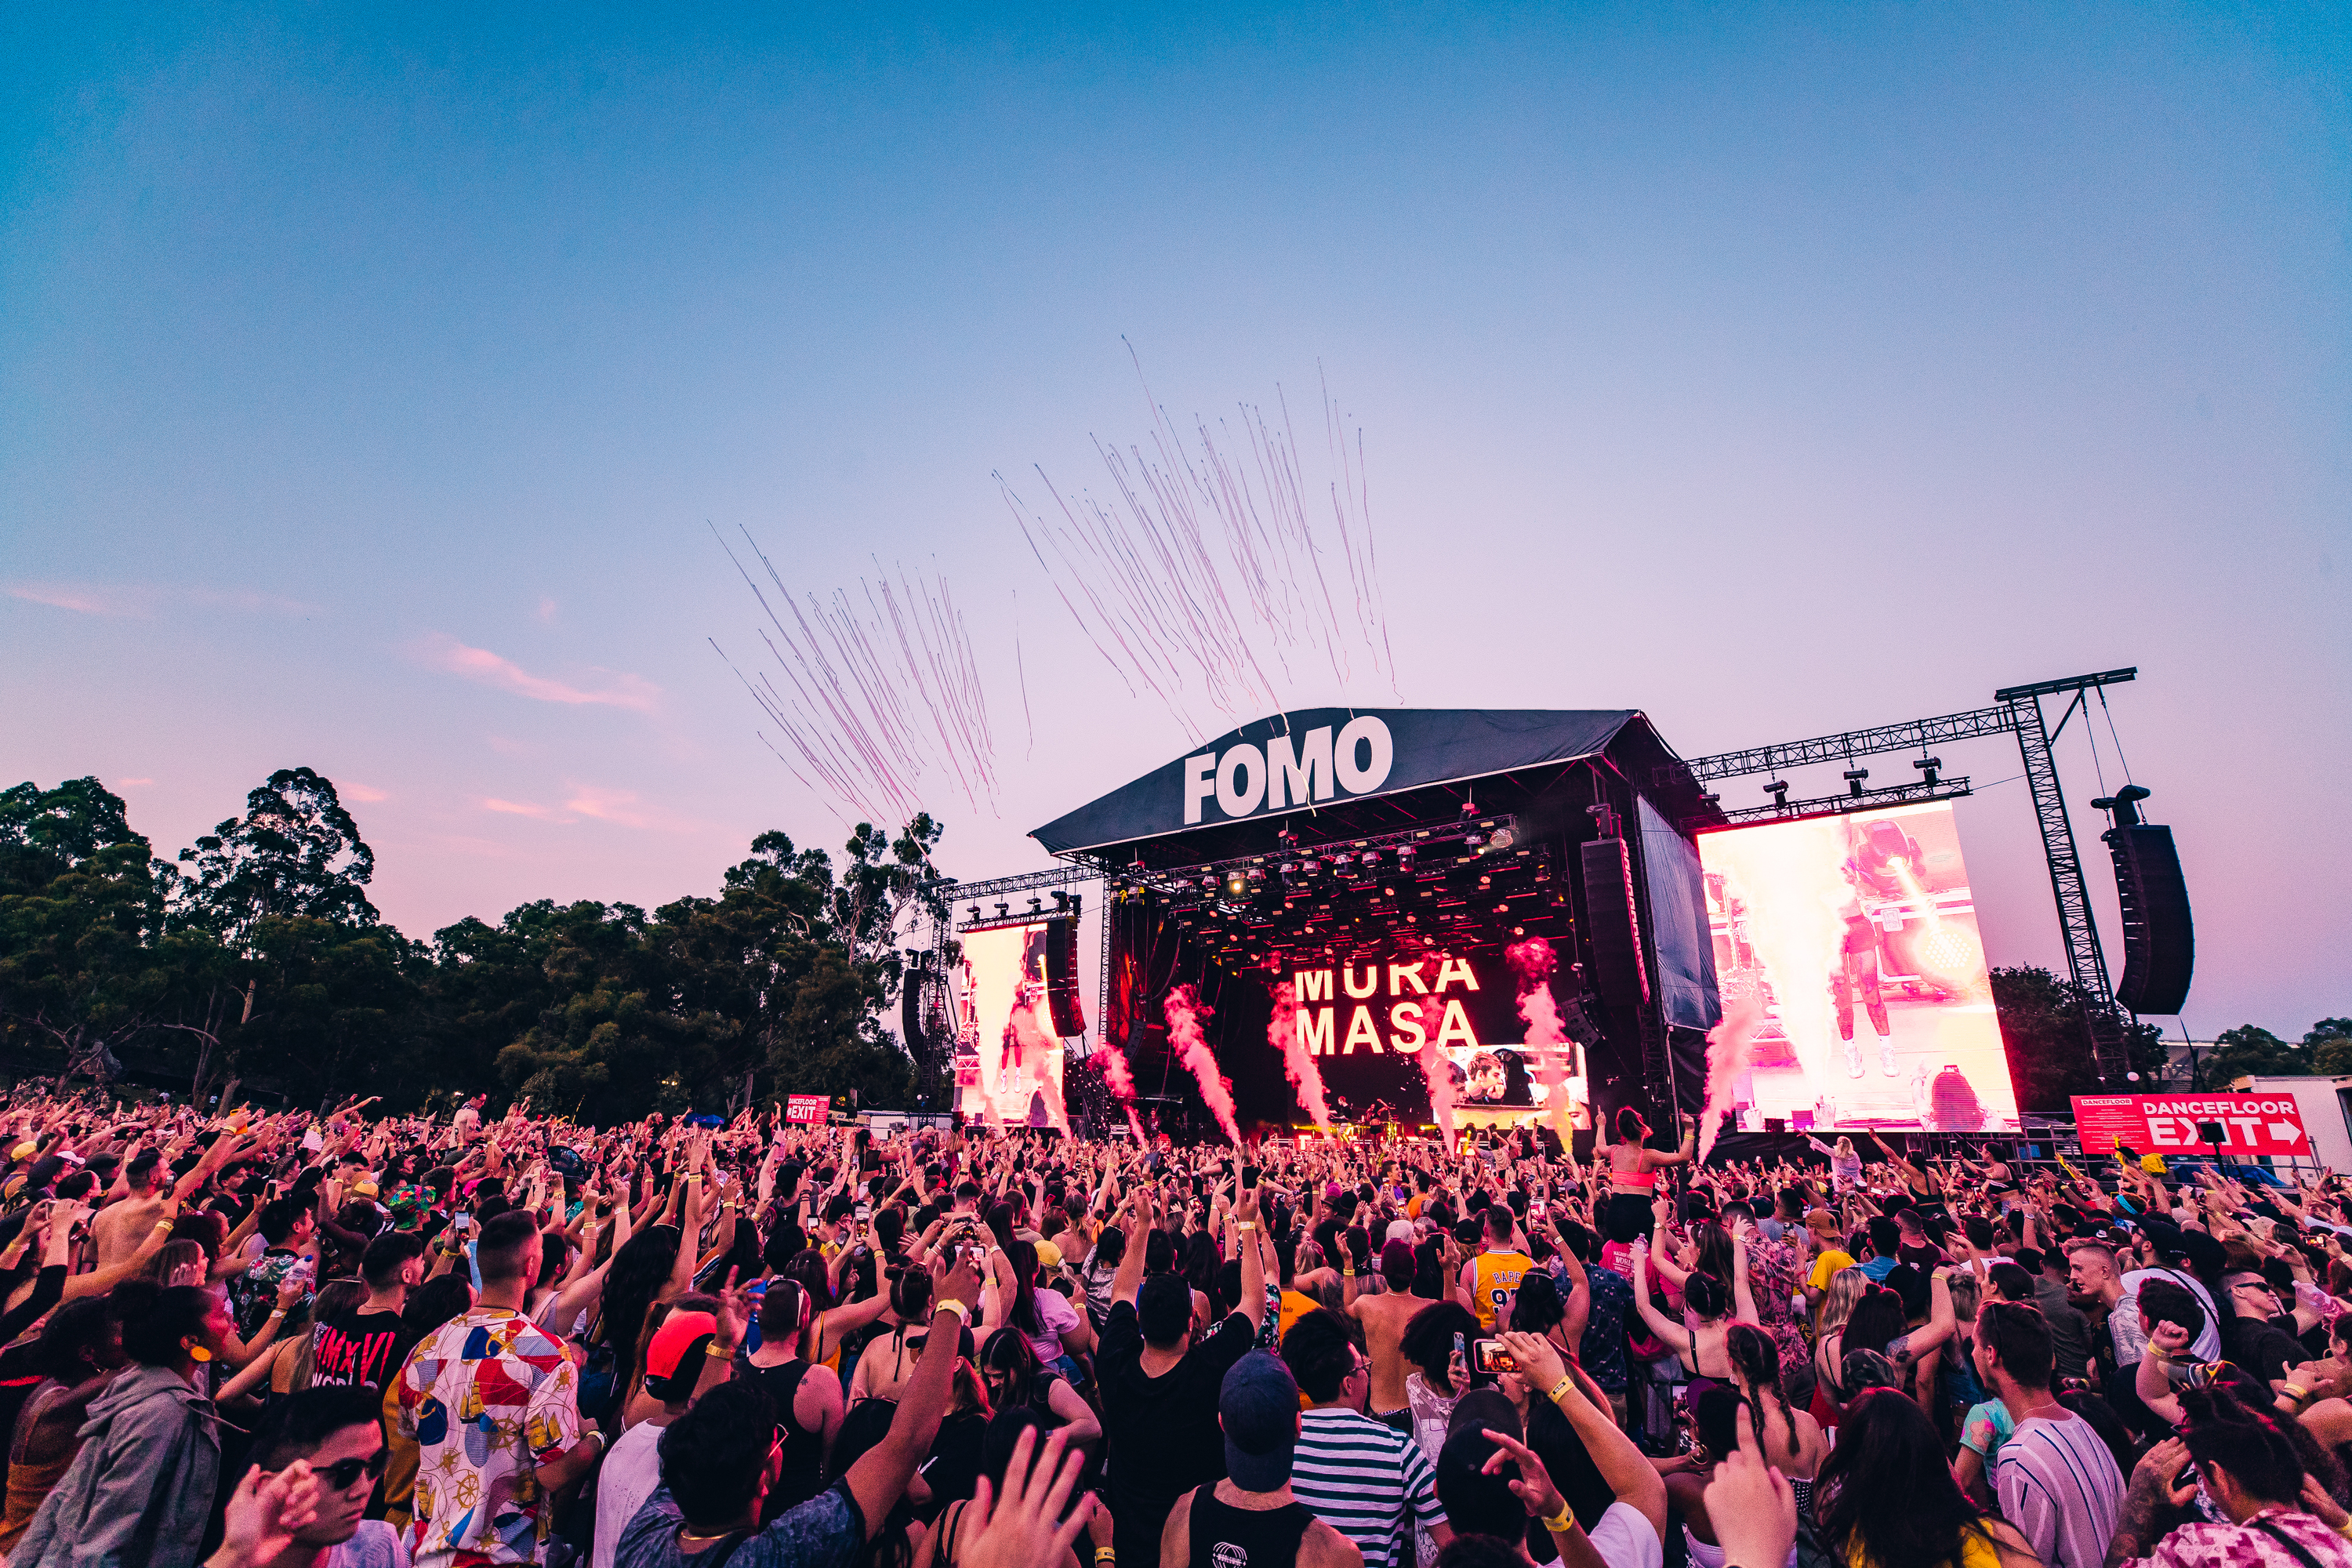 Crowd of people dancing at FOMO Festival as the sun sets.